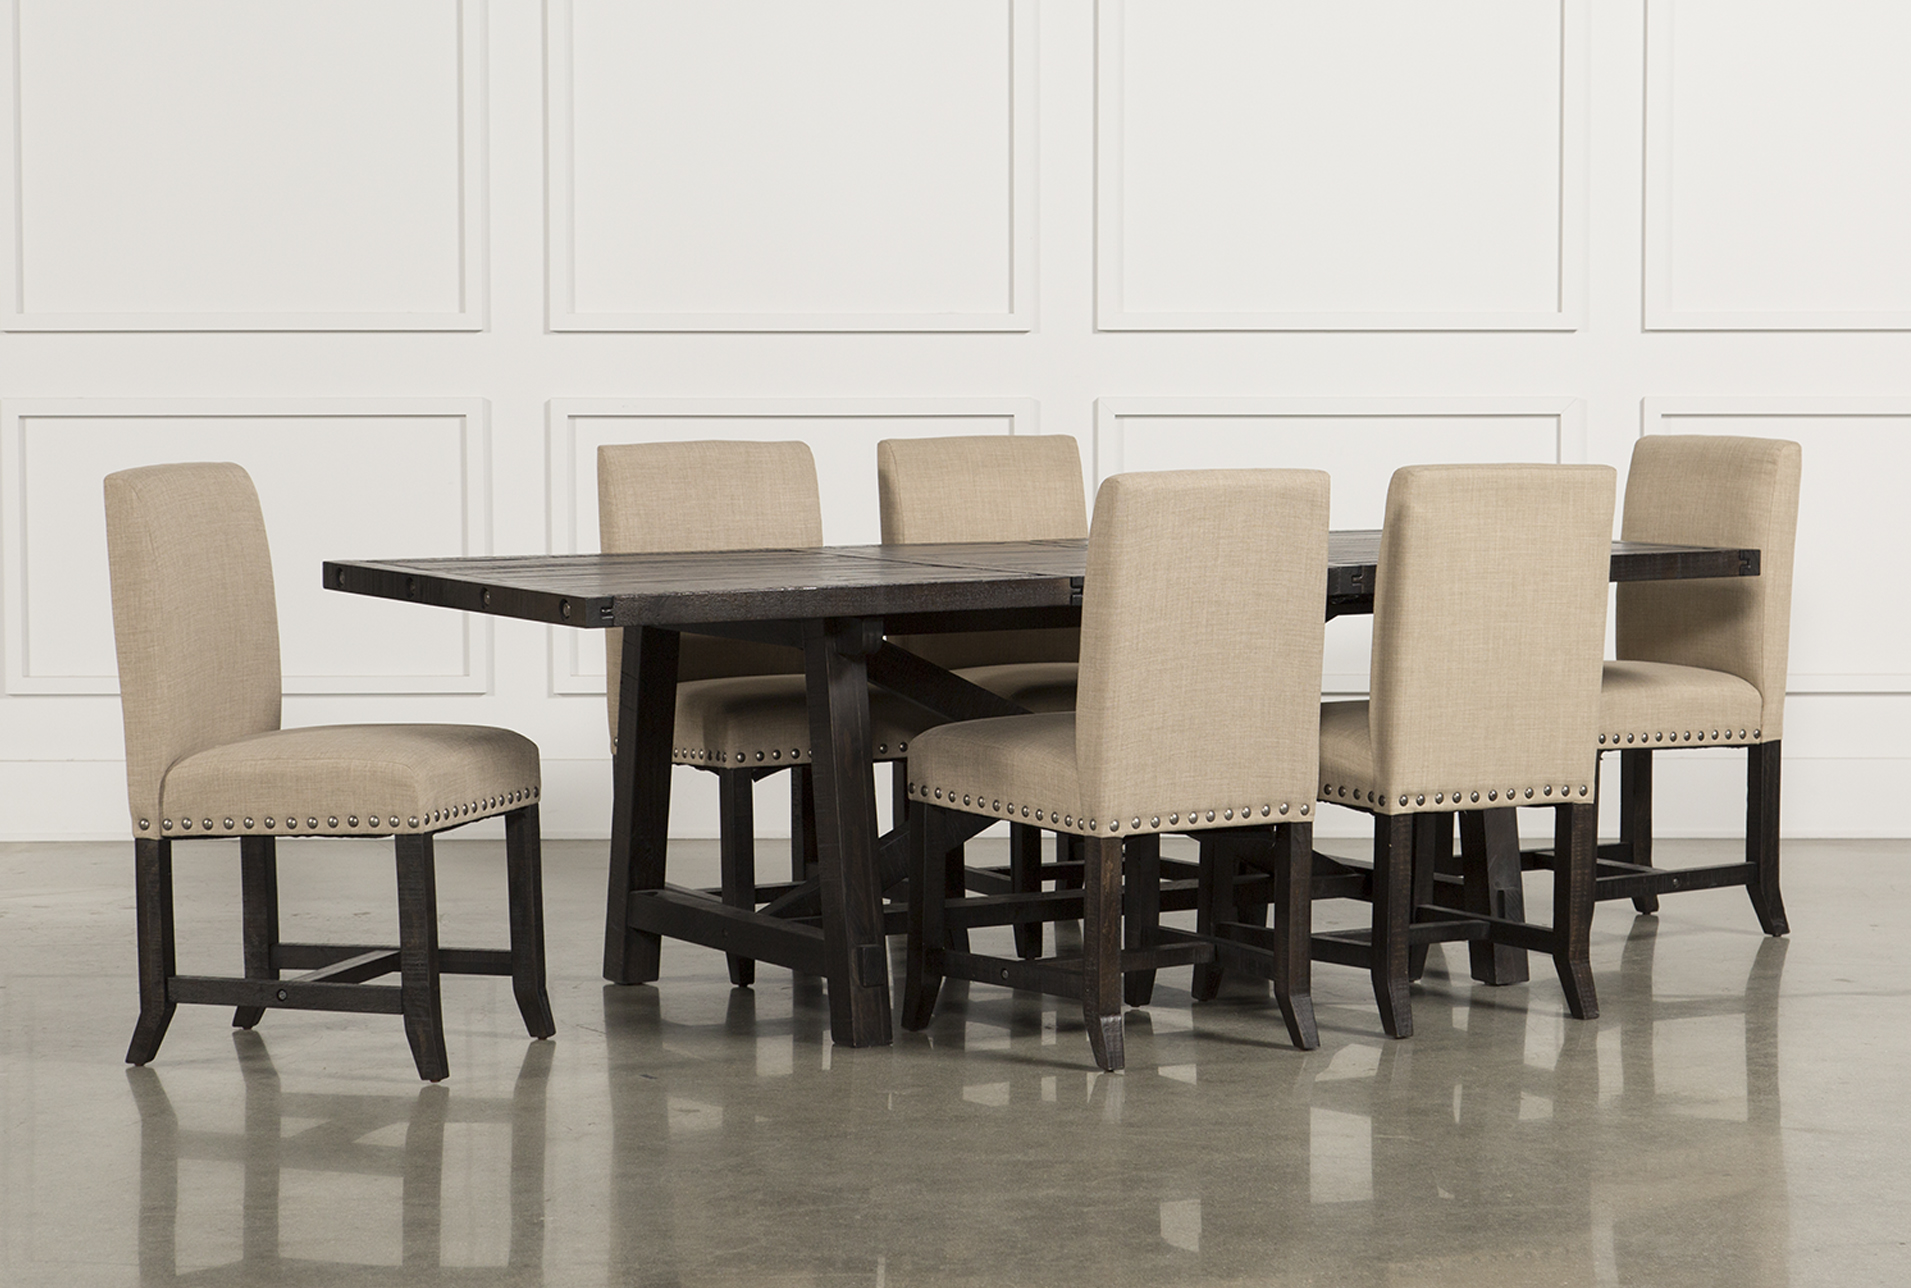 Charmant Jaxon 7 Piece Rectangle Dining Set W/Upholstered Chairs